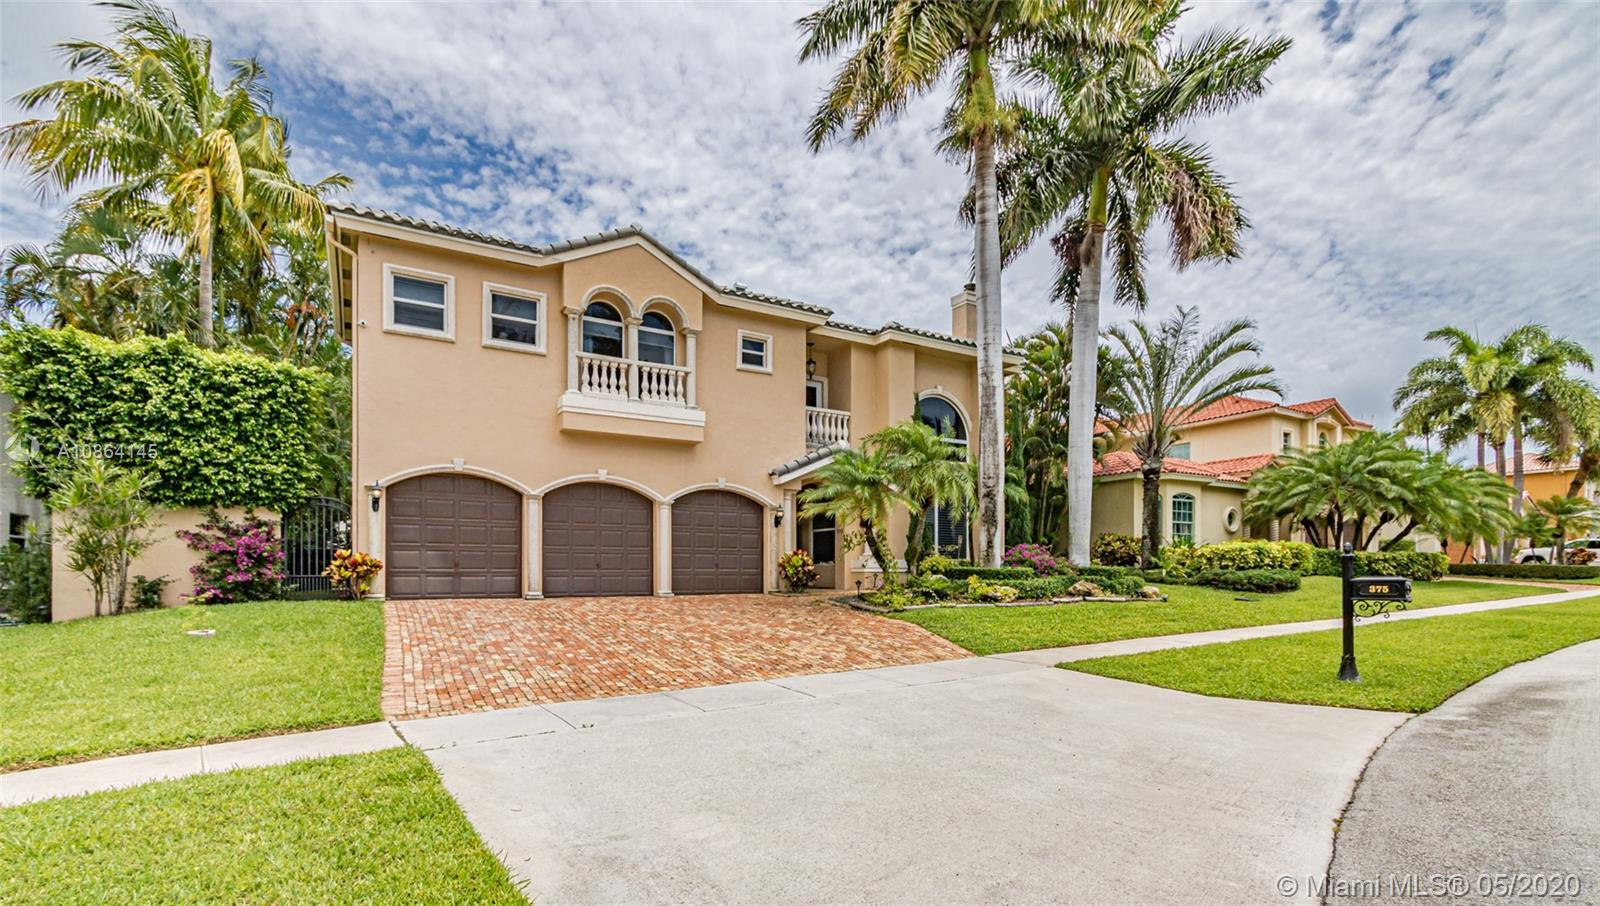 Stunning upgraded 2 story 5/4 Mediterranean villa with courtyard in desirable gated Boca East Estate